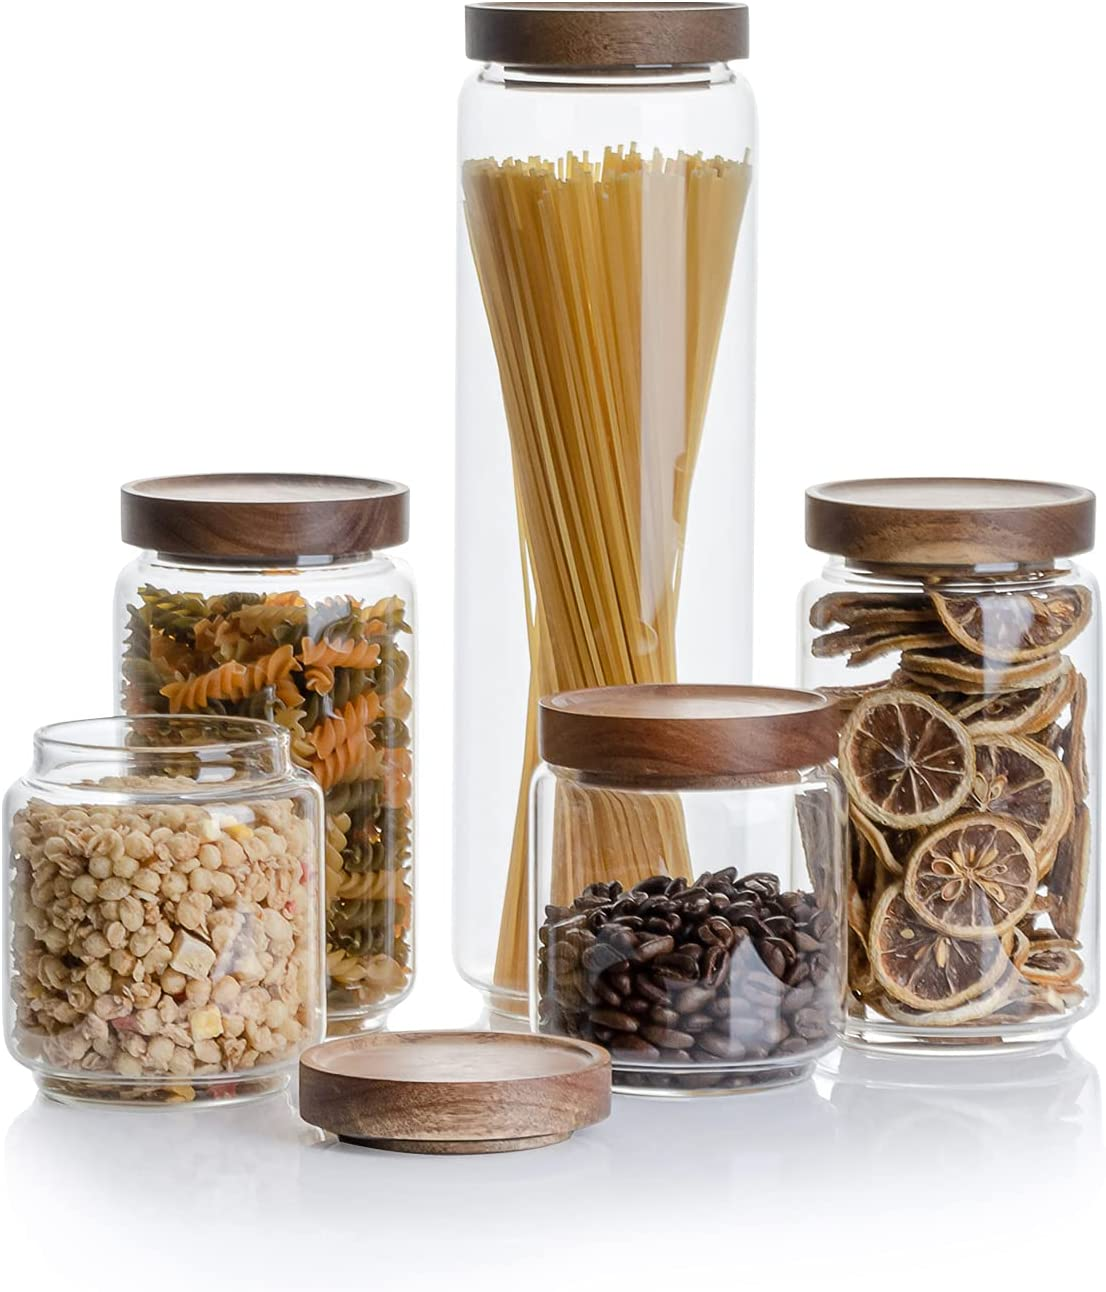 Kanwone Airtight Food Storage Containers with Bamboo lids set of 5, Stackable Food Storage Containers, Glass Canisters for Pantry, kitchen, Flour, Sugar, Tea, Coffee, Pasta, Cookies, Rice and Spice